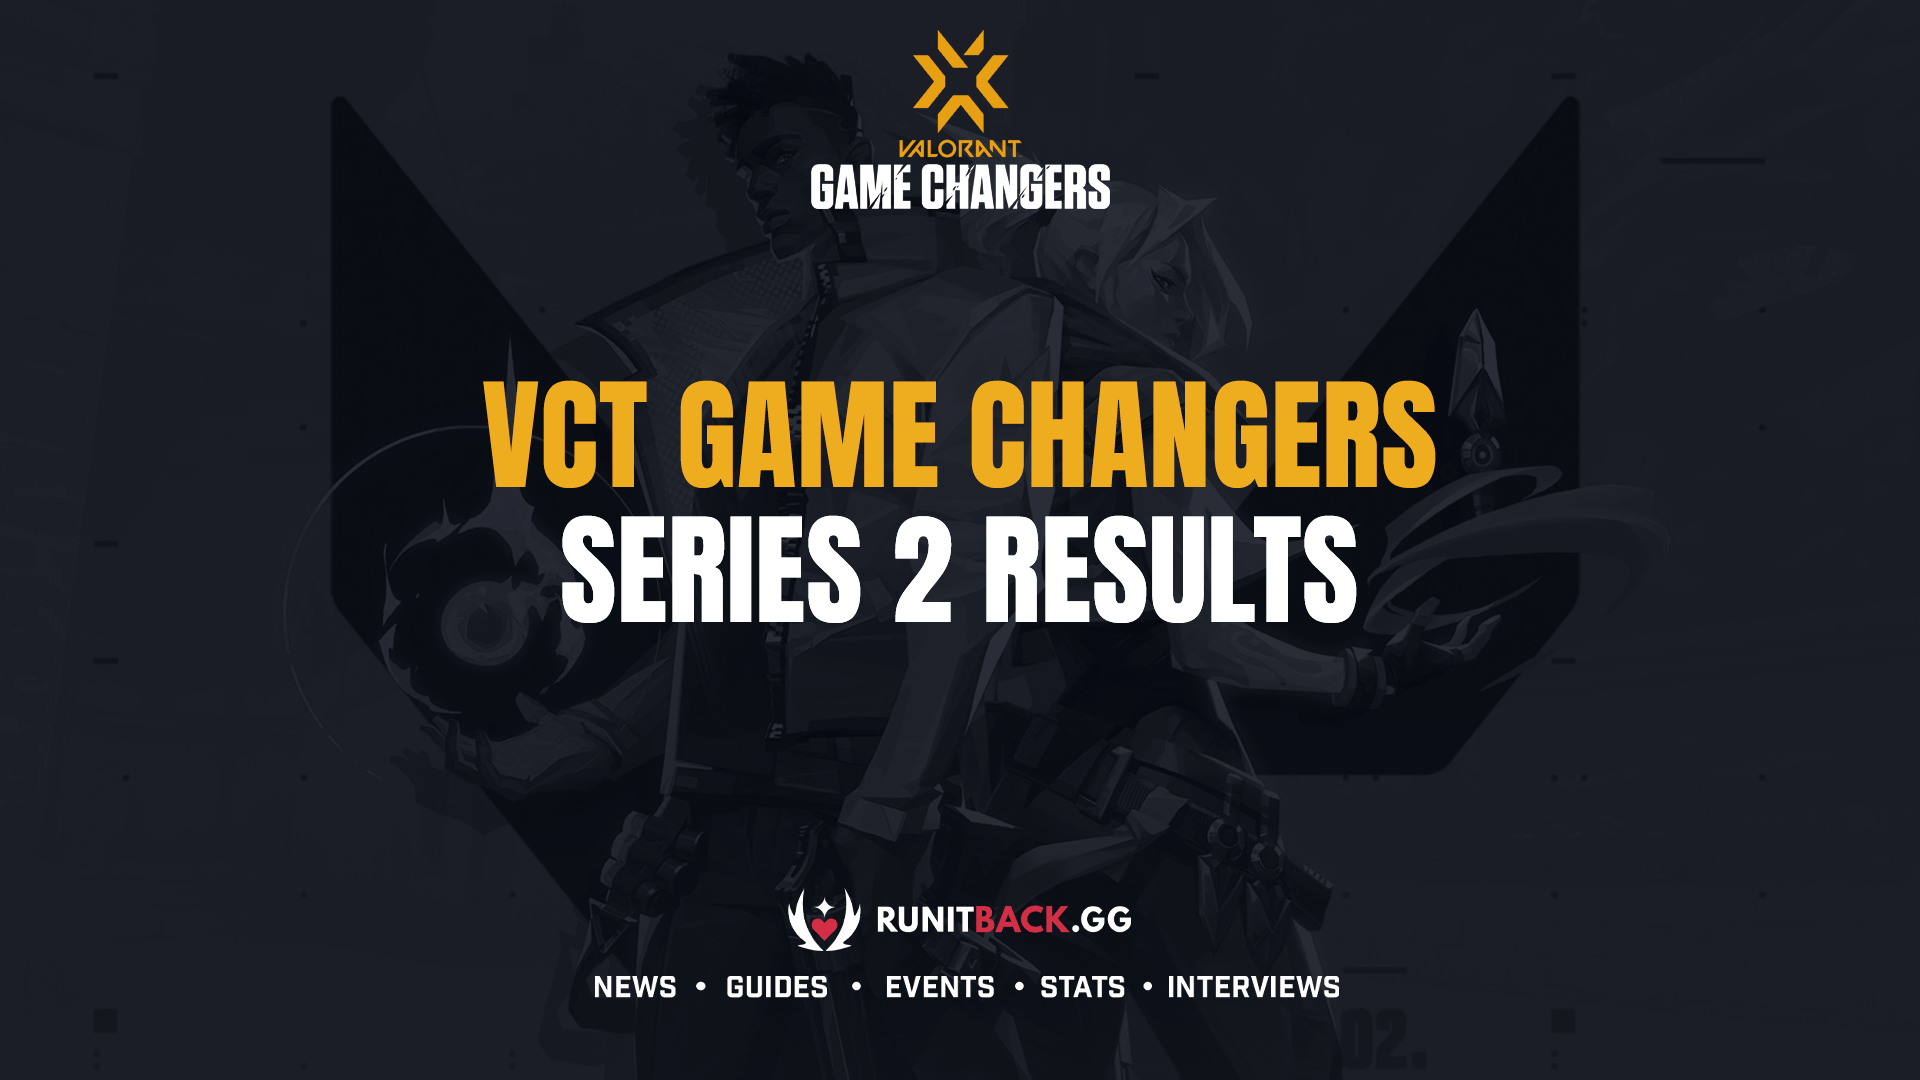 VCT Game Changers Series 2 Results